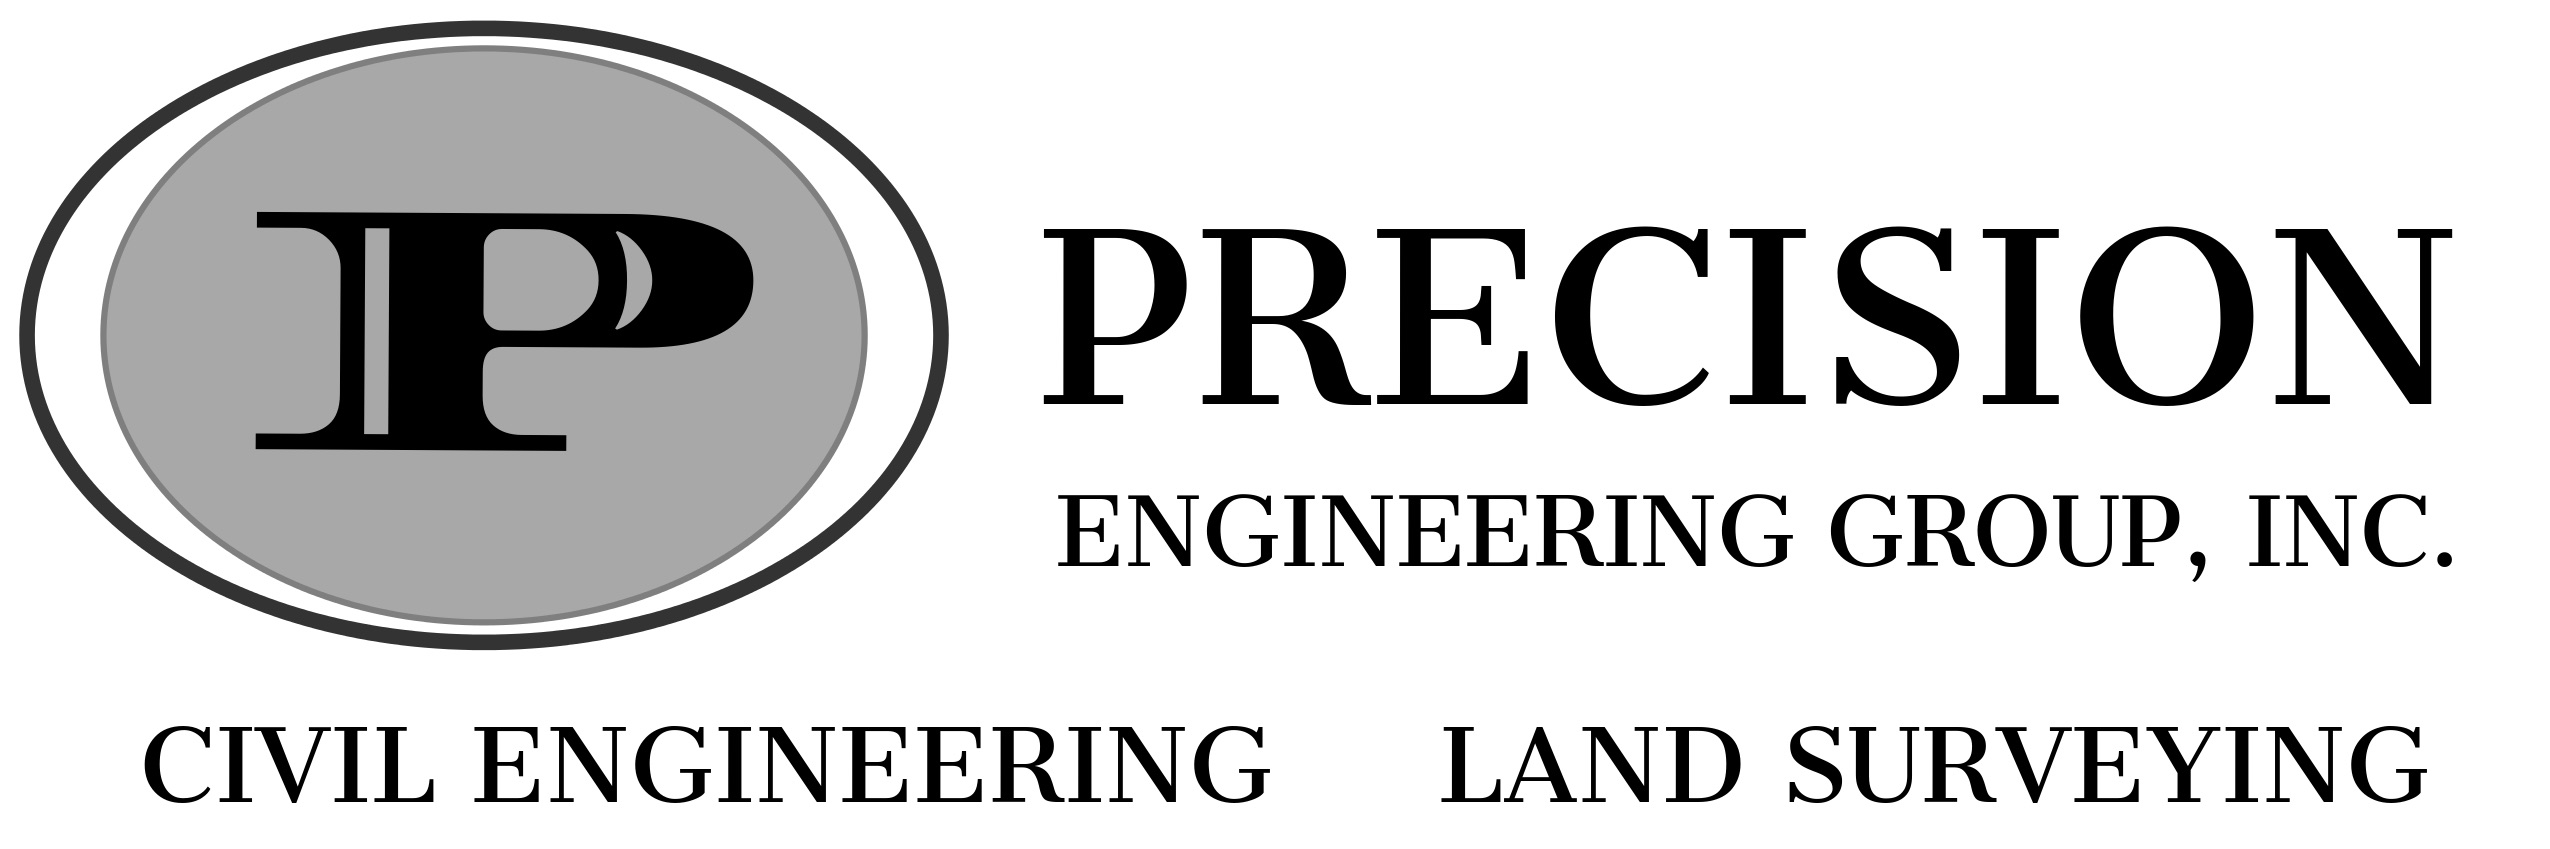 Precision Engineering Group, Inc.